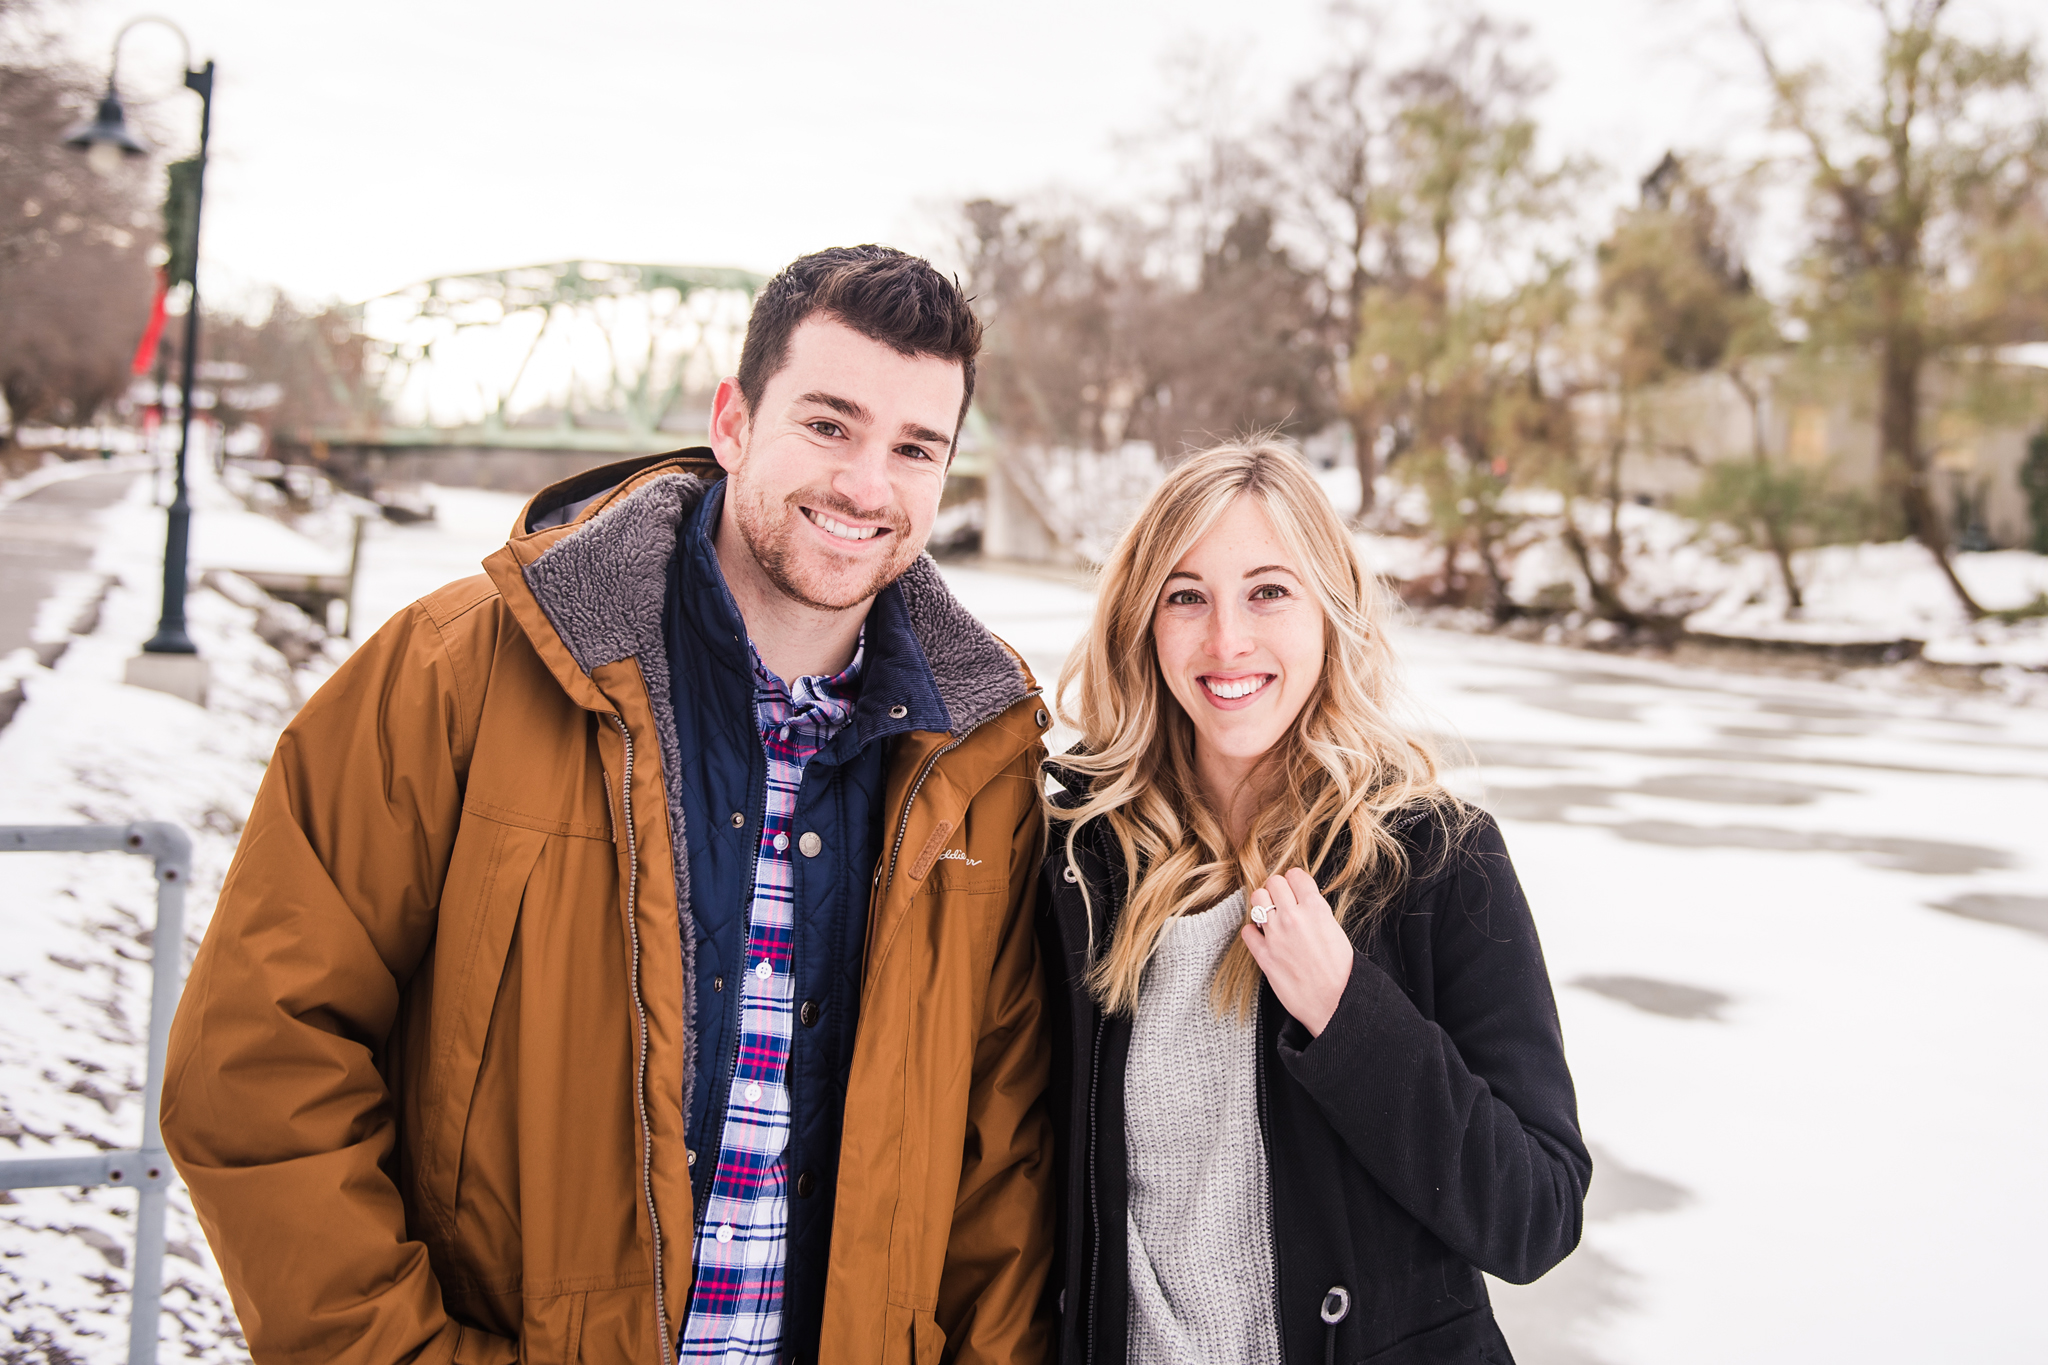 Schoen_Place_Rochester_Engagement_Session_JILL_STUDIO_Rochester_NY_Photographer_DSC_1156.jpg